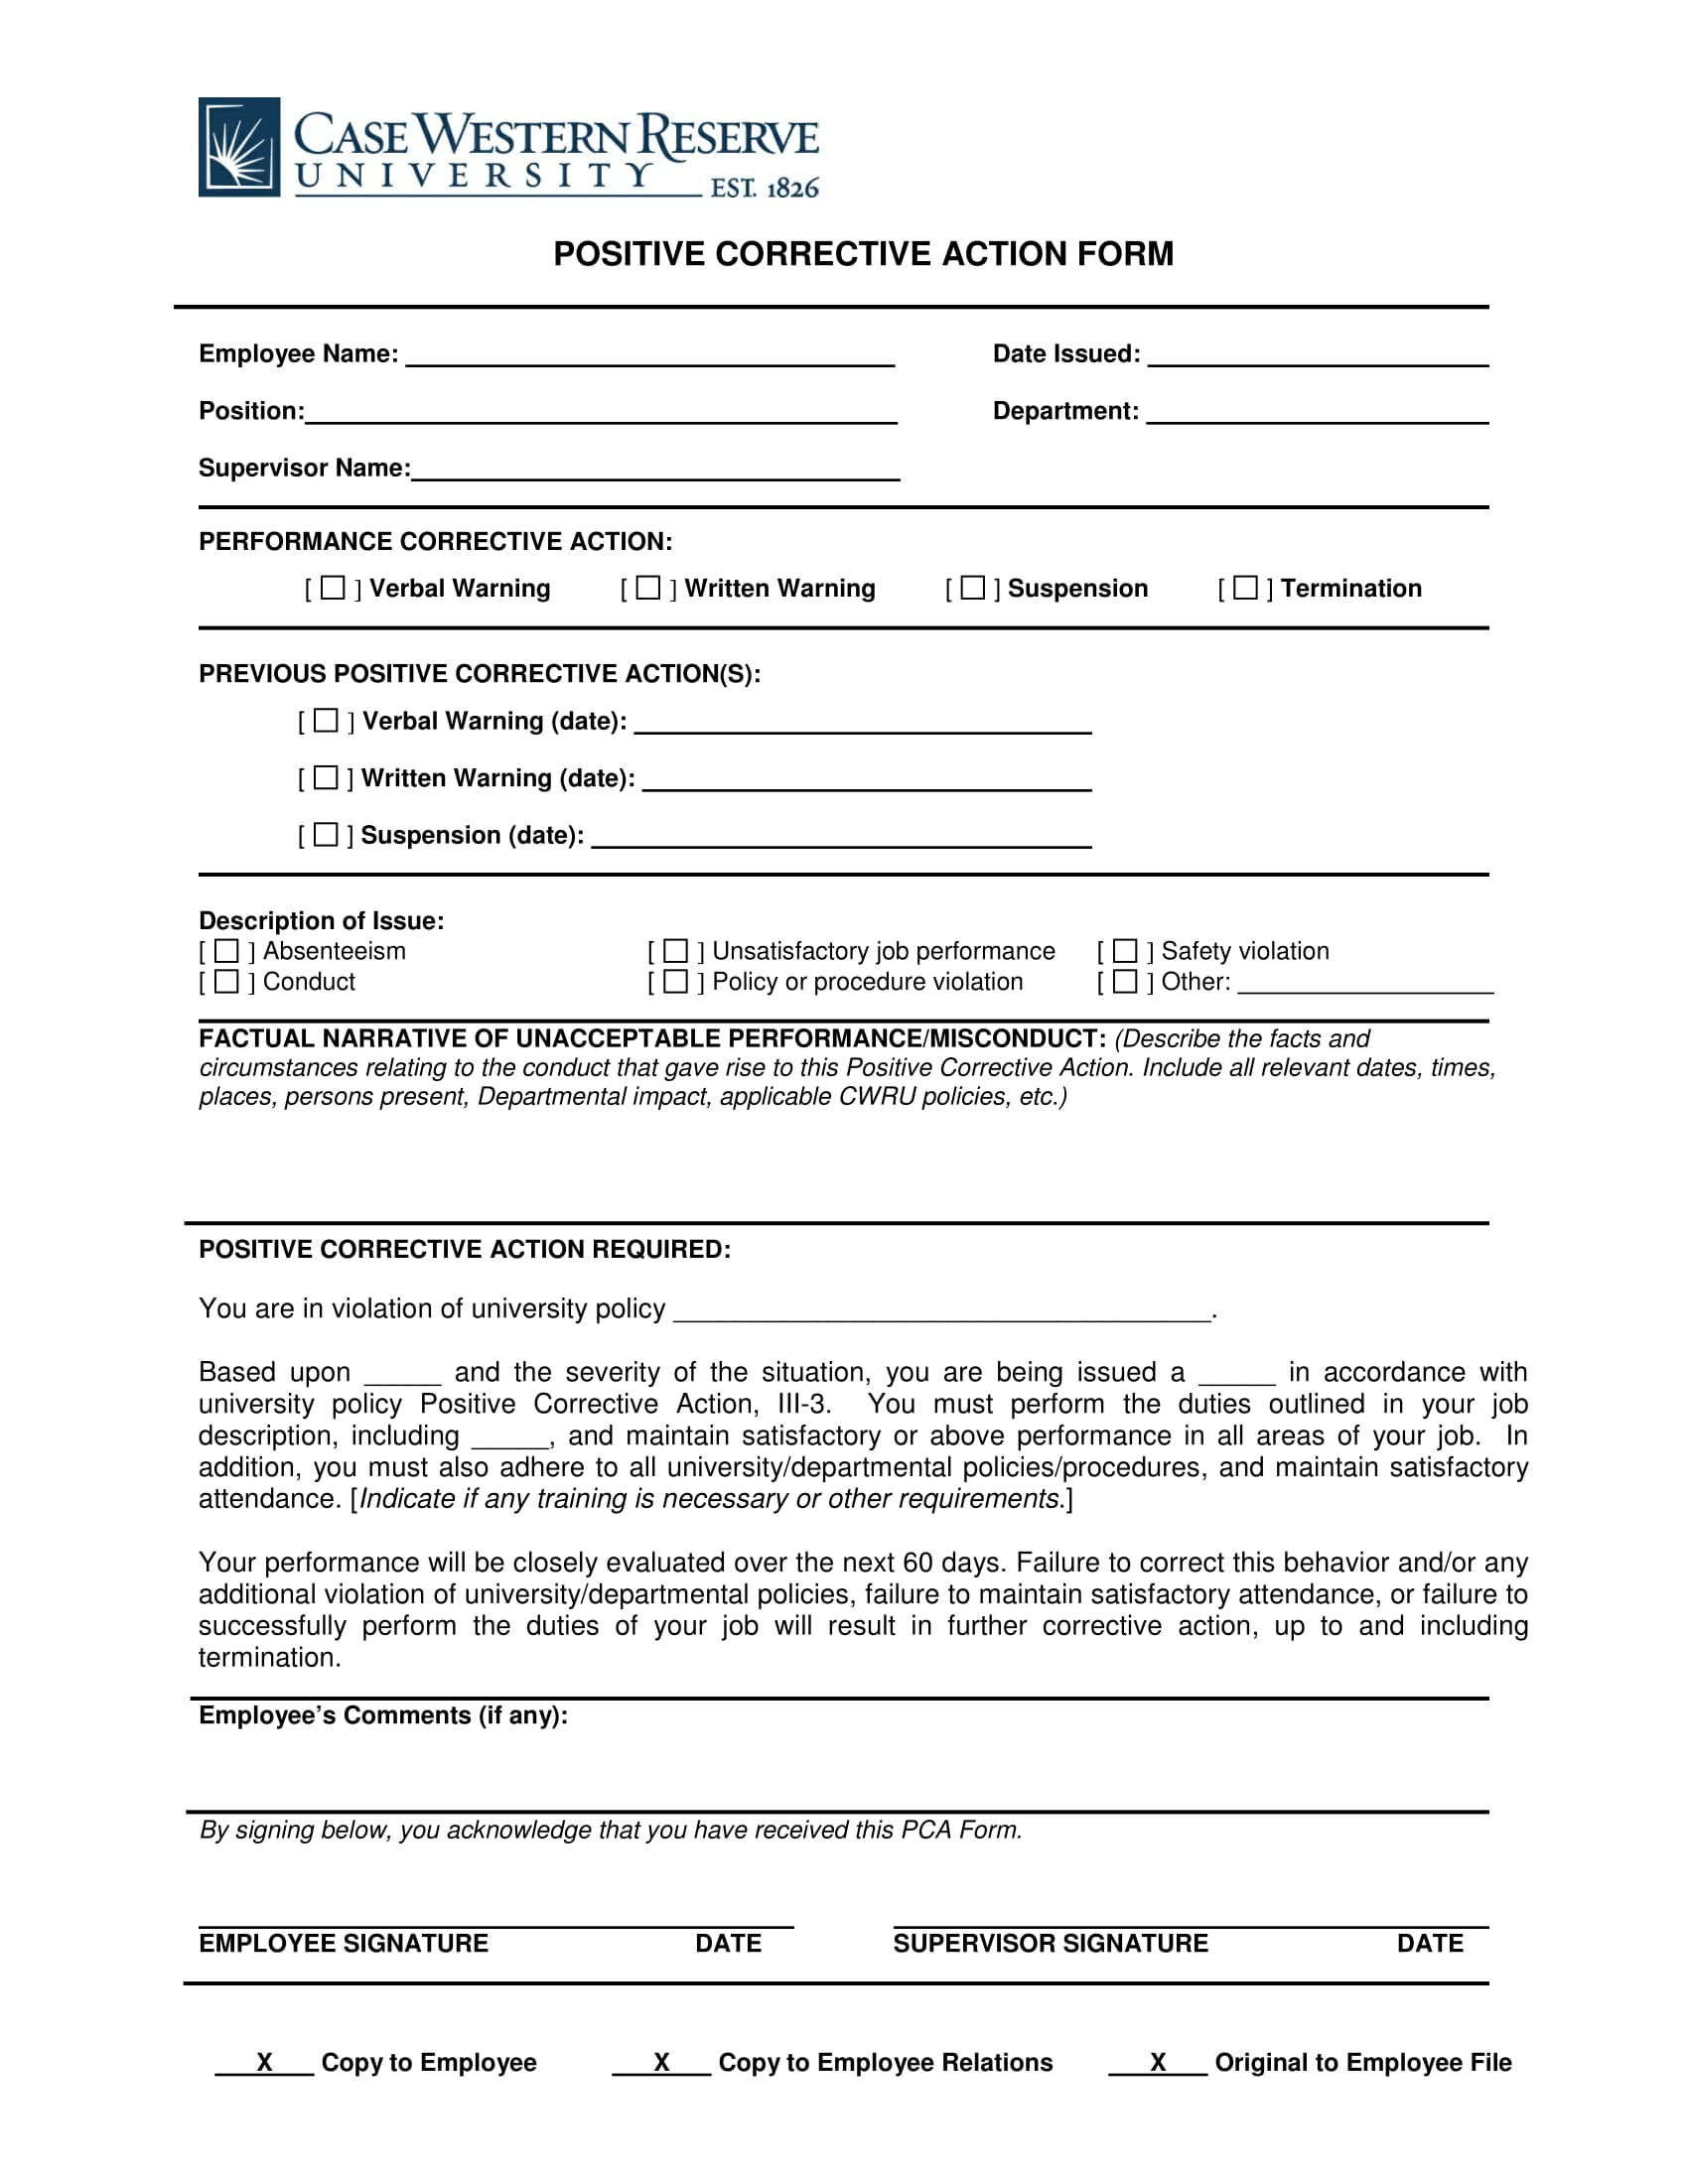 positive corrective action form 1